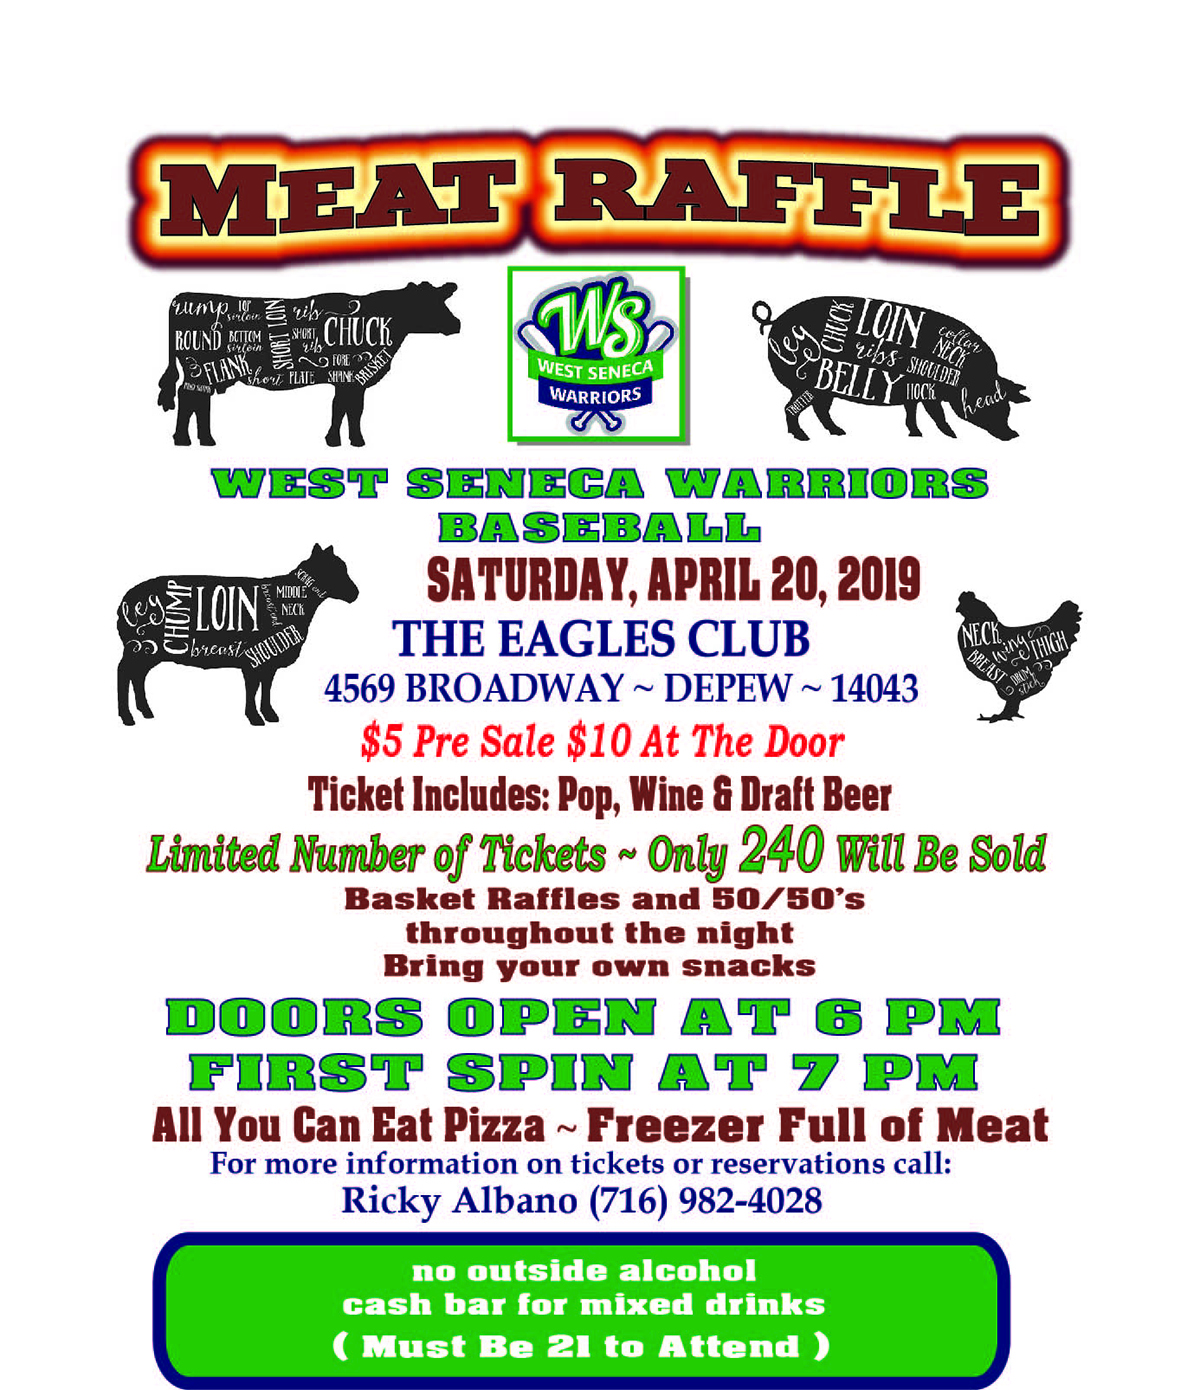 CWI 1501 WS WARRIORS MEAT RAFFLE 1st 4X5 POSTER 2nd PROOF 4-20-19  3-12-18.jpg